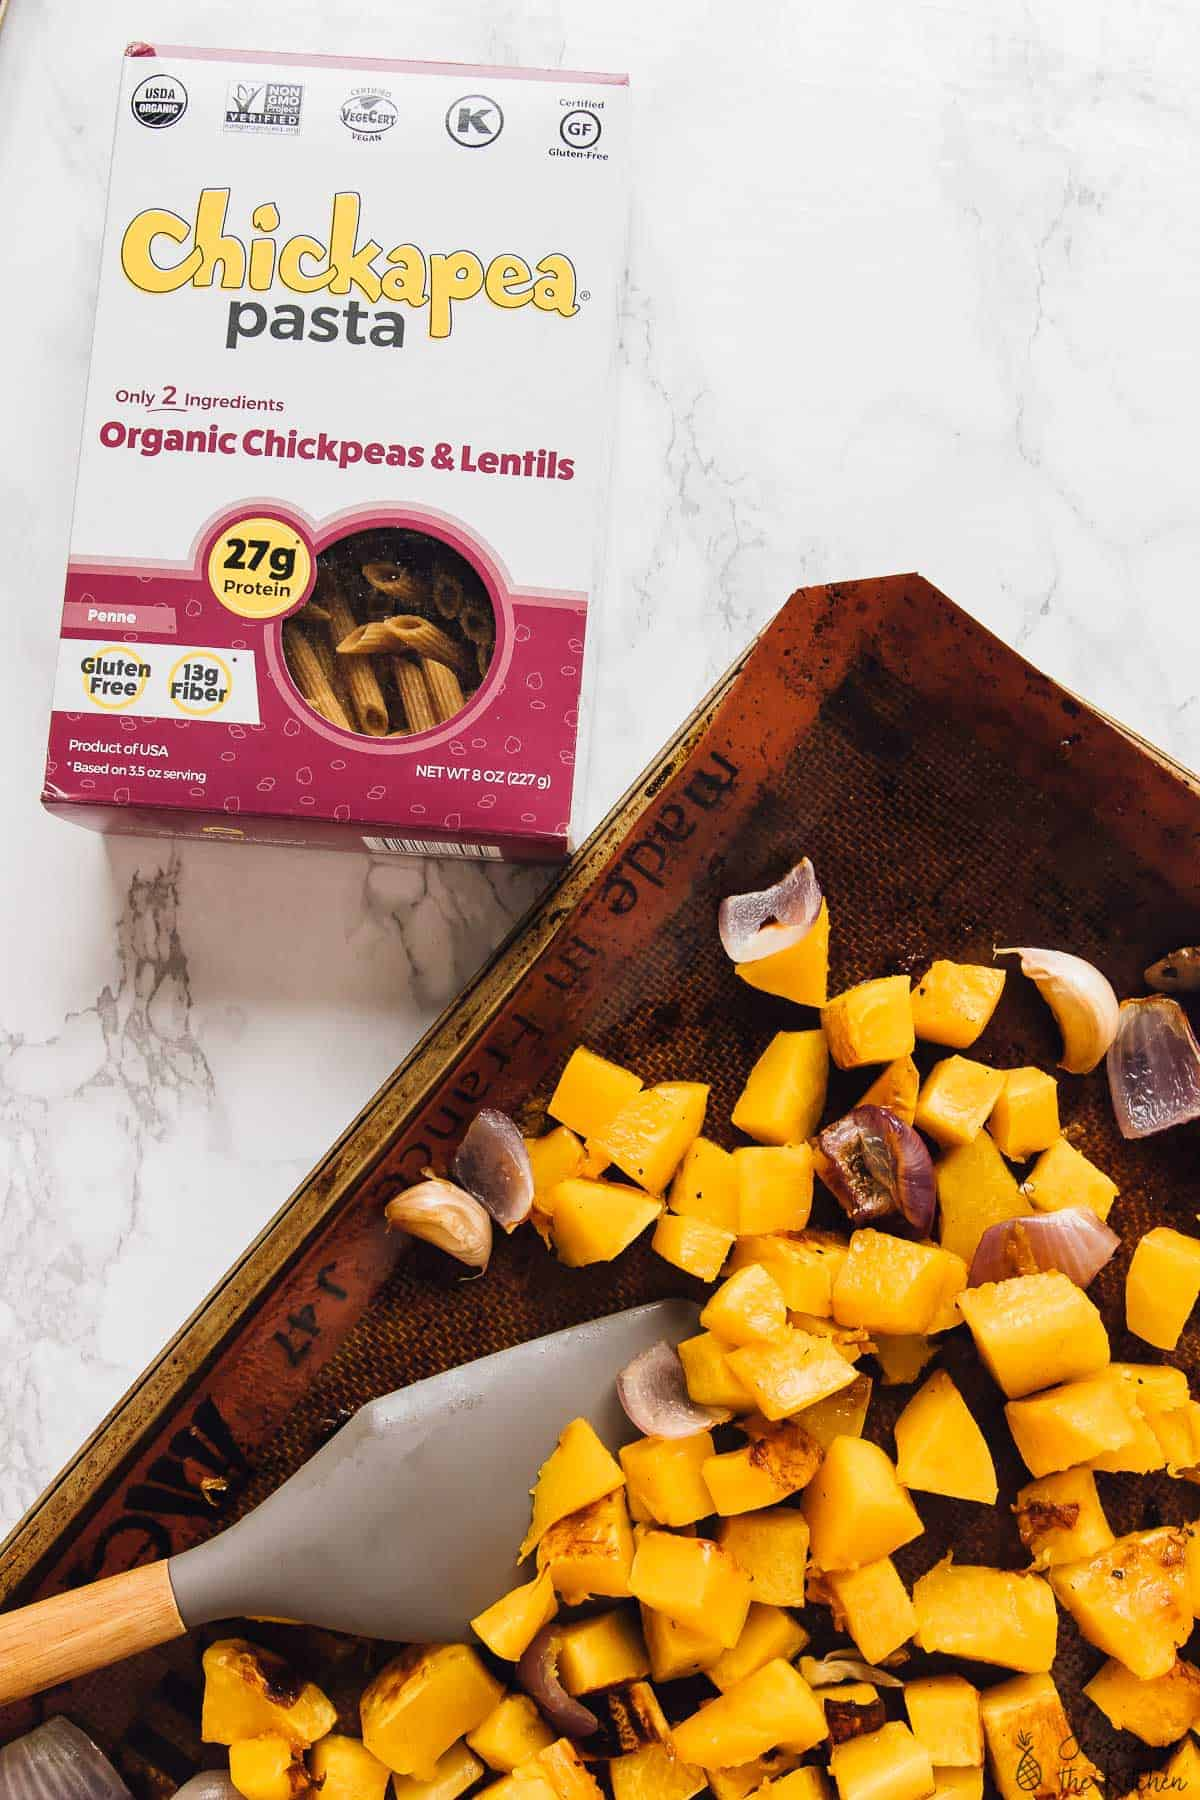 This Butternut Squash Pasta Bake (GF)| Jessica in the Kitchen